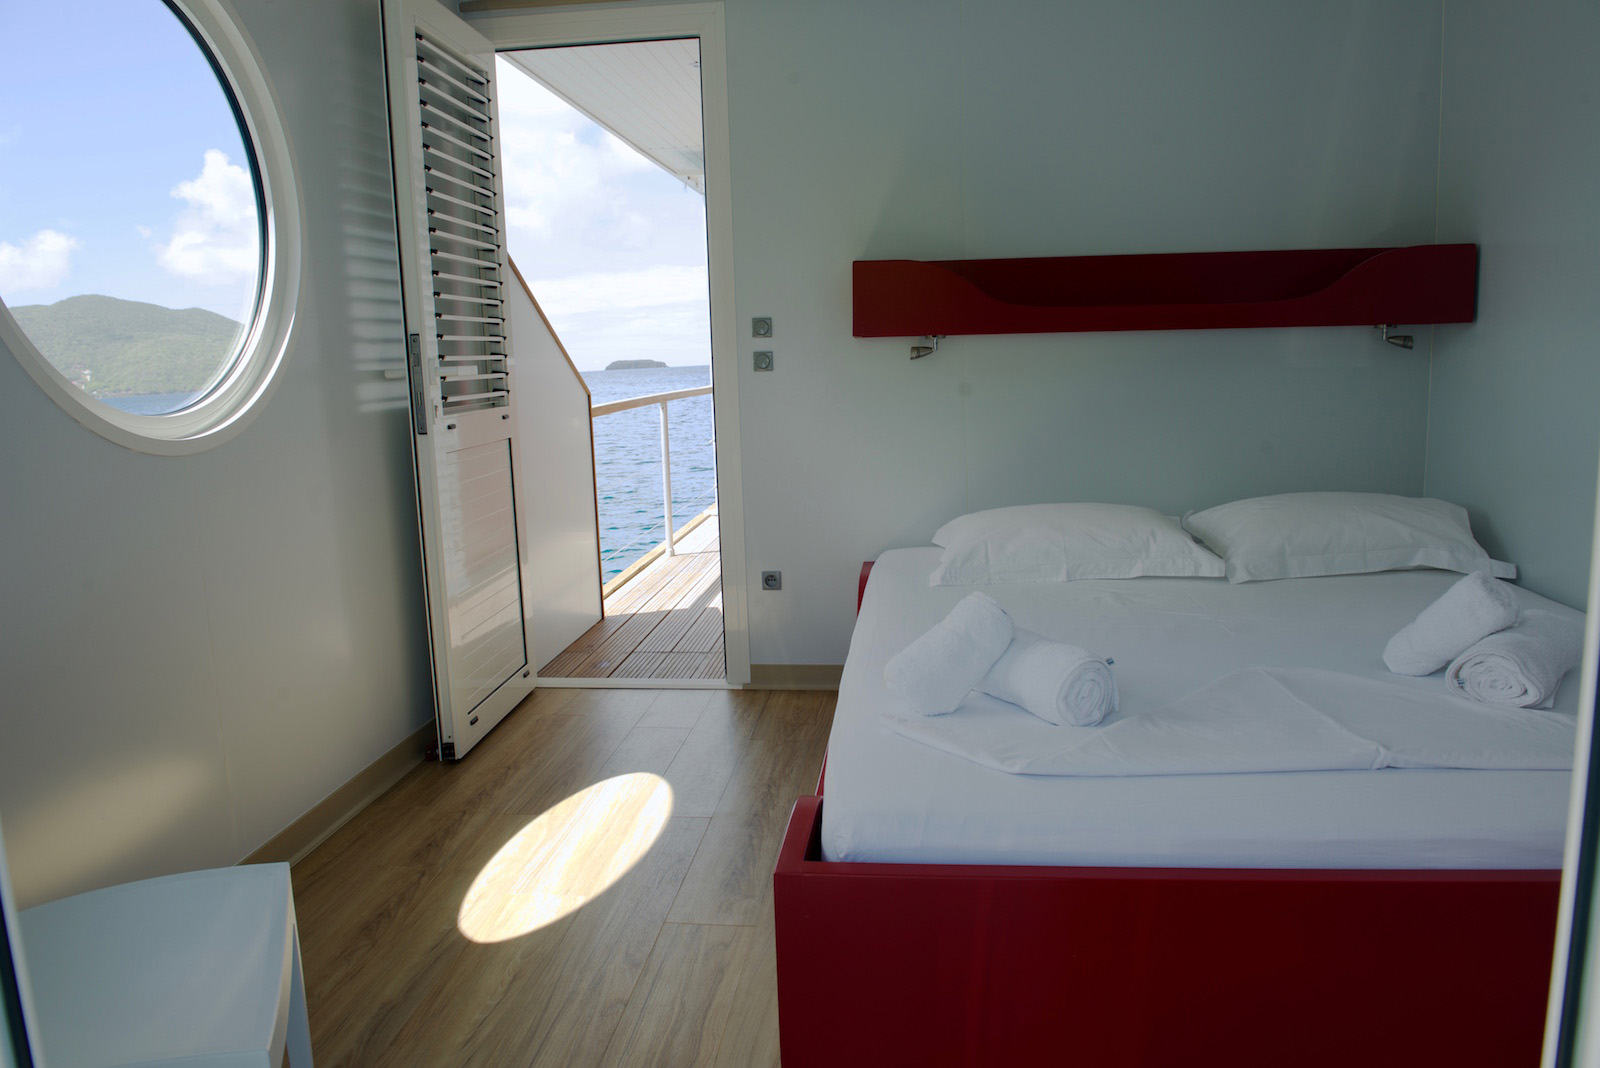 http://www.deshotelsetdesiles.com/hotel-vol-guadeloupe/photos/_DIG1053.jpg